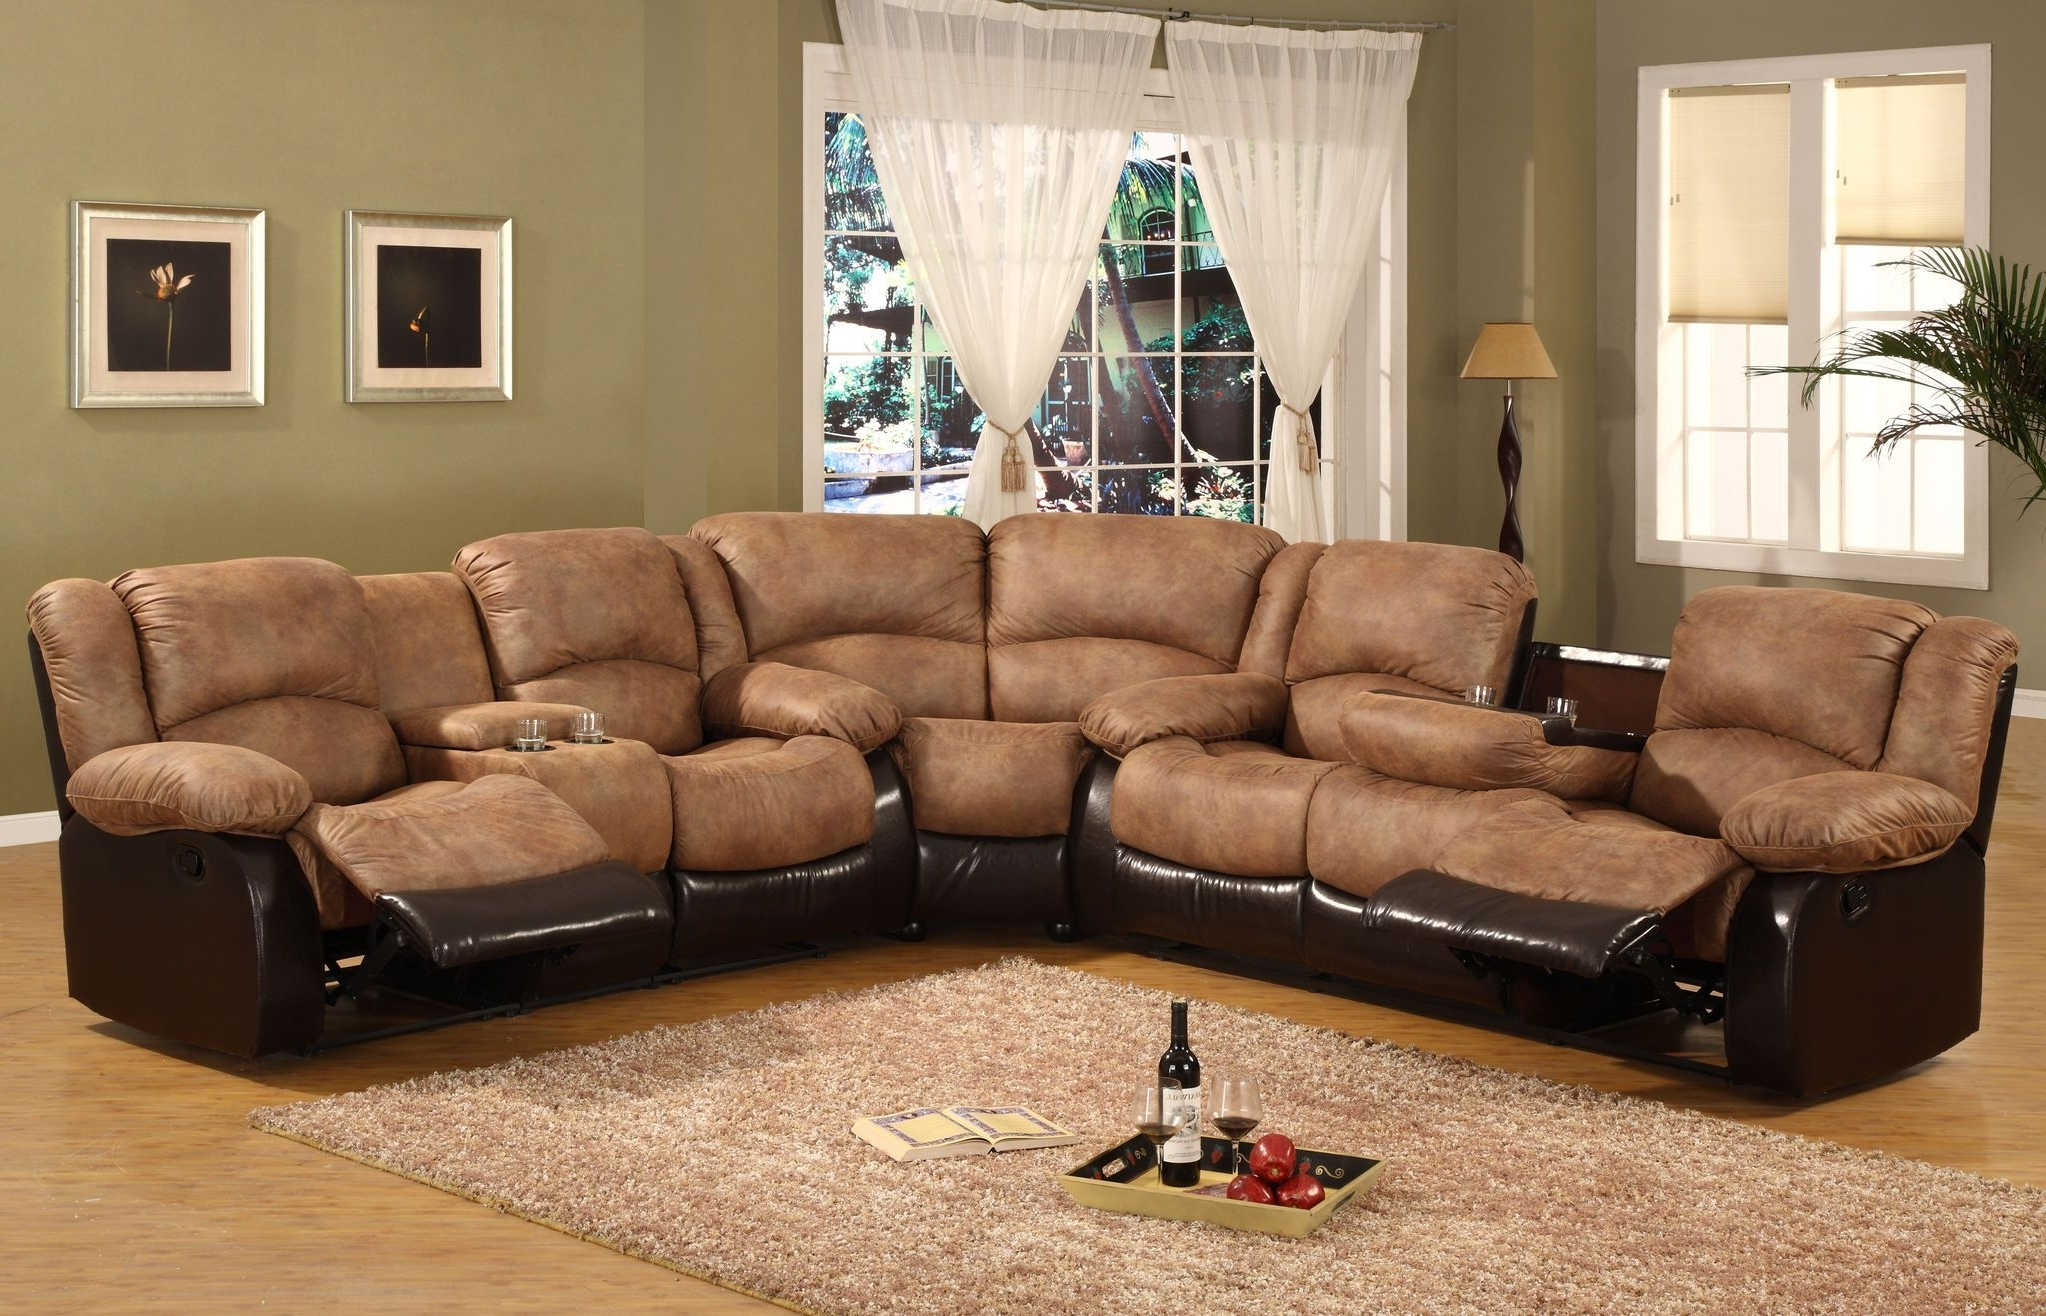 Recent Sectional Sofas At Big Lots With Big Lots Furniture Sofas Sectional Warranty Vanity Licious Biglots (View 16 of 20)